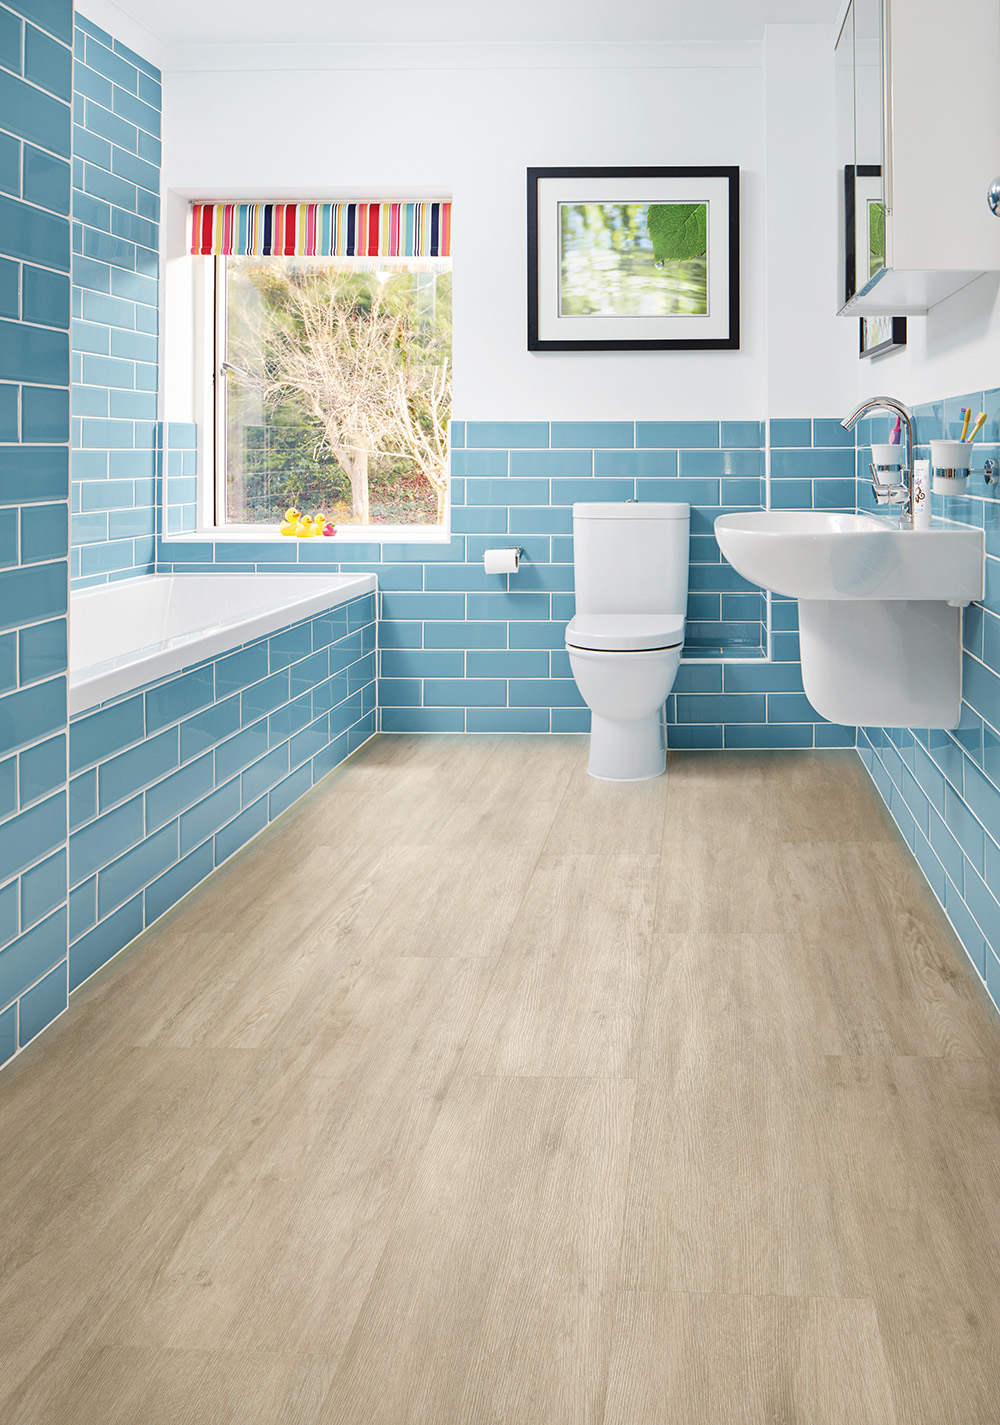 Kitchen and Bathroom flooring trends to look out for by Palio by ...